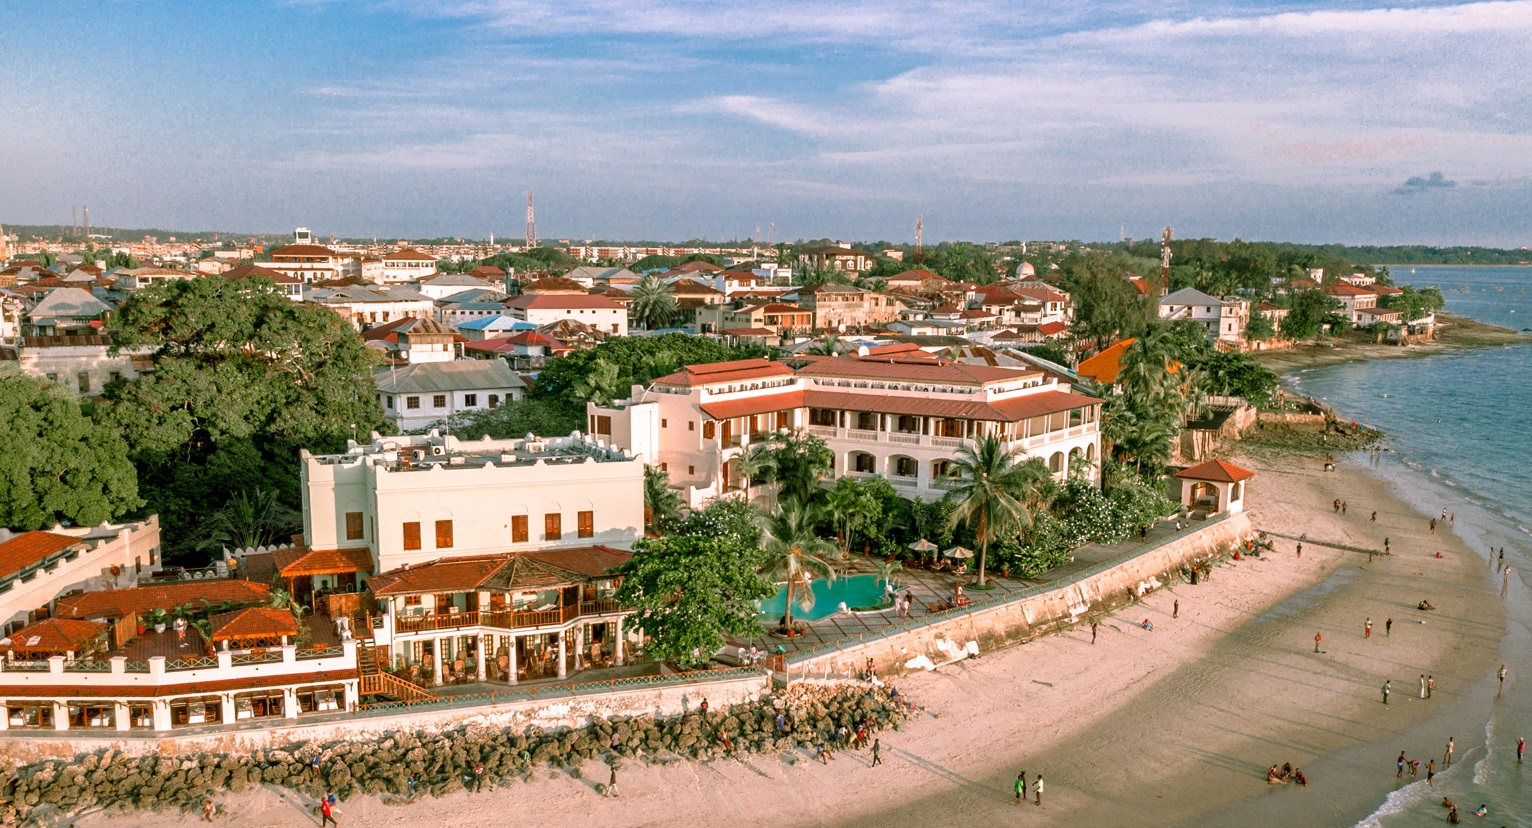 Things to know about Zanzibar